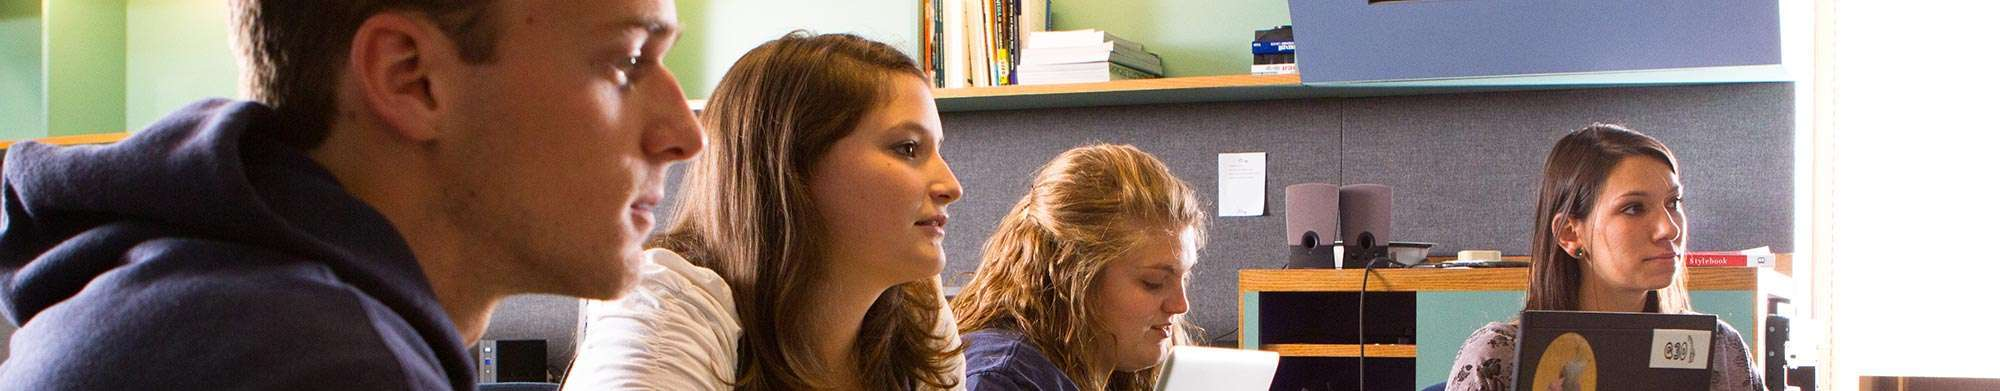 Quinnipiac University students in a classroom setting